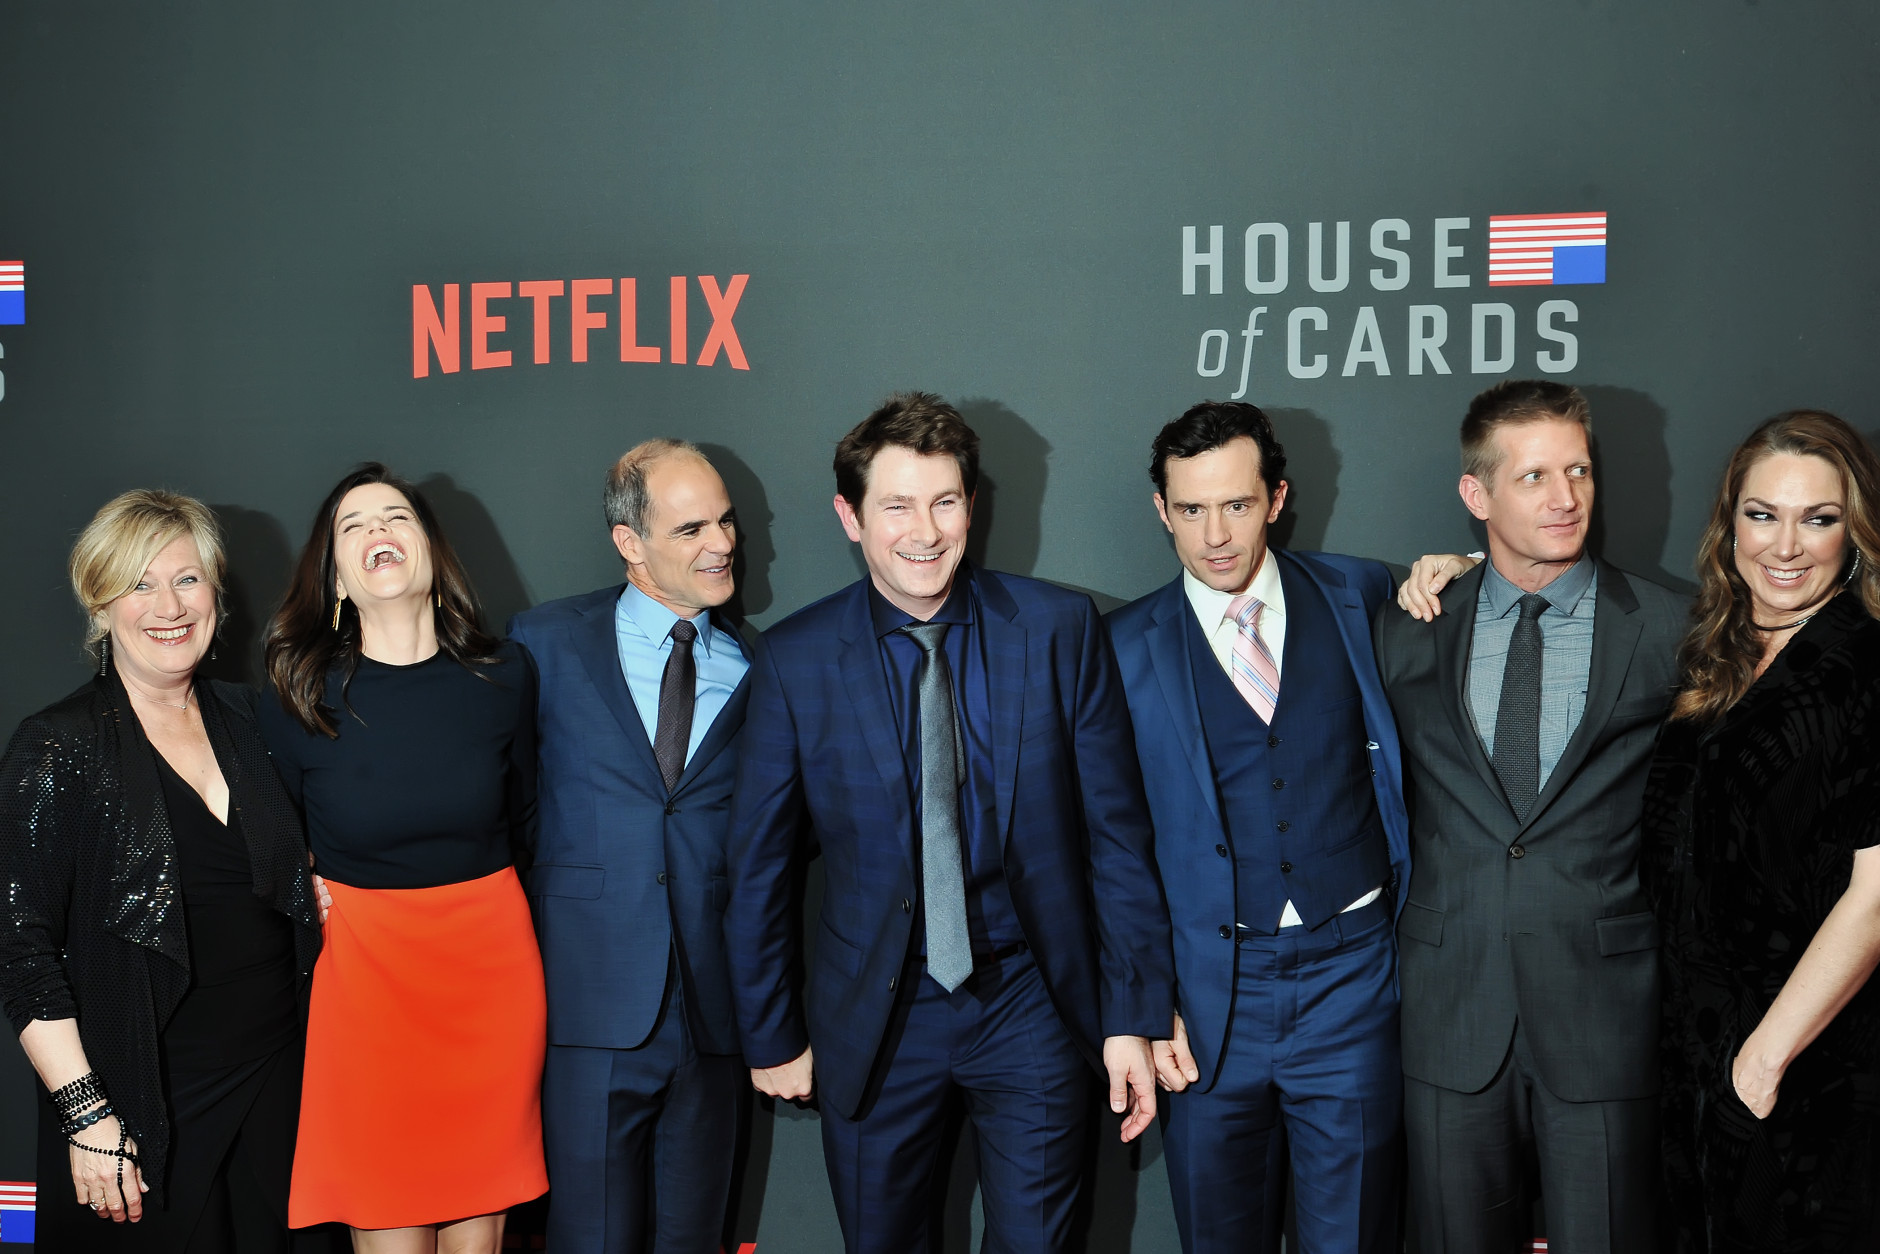 High Quality Cast Of House Of Cards   House Of Cards Cast